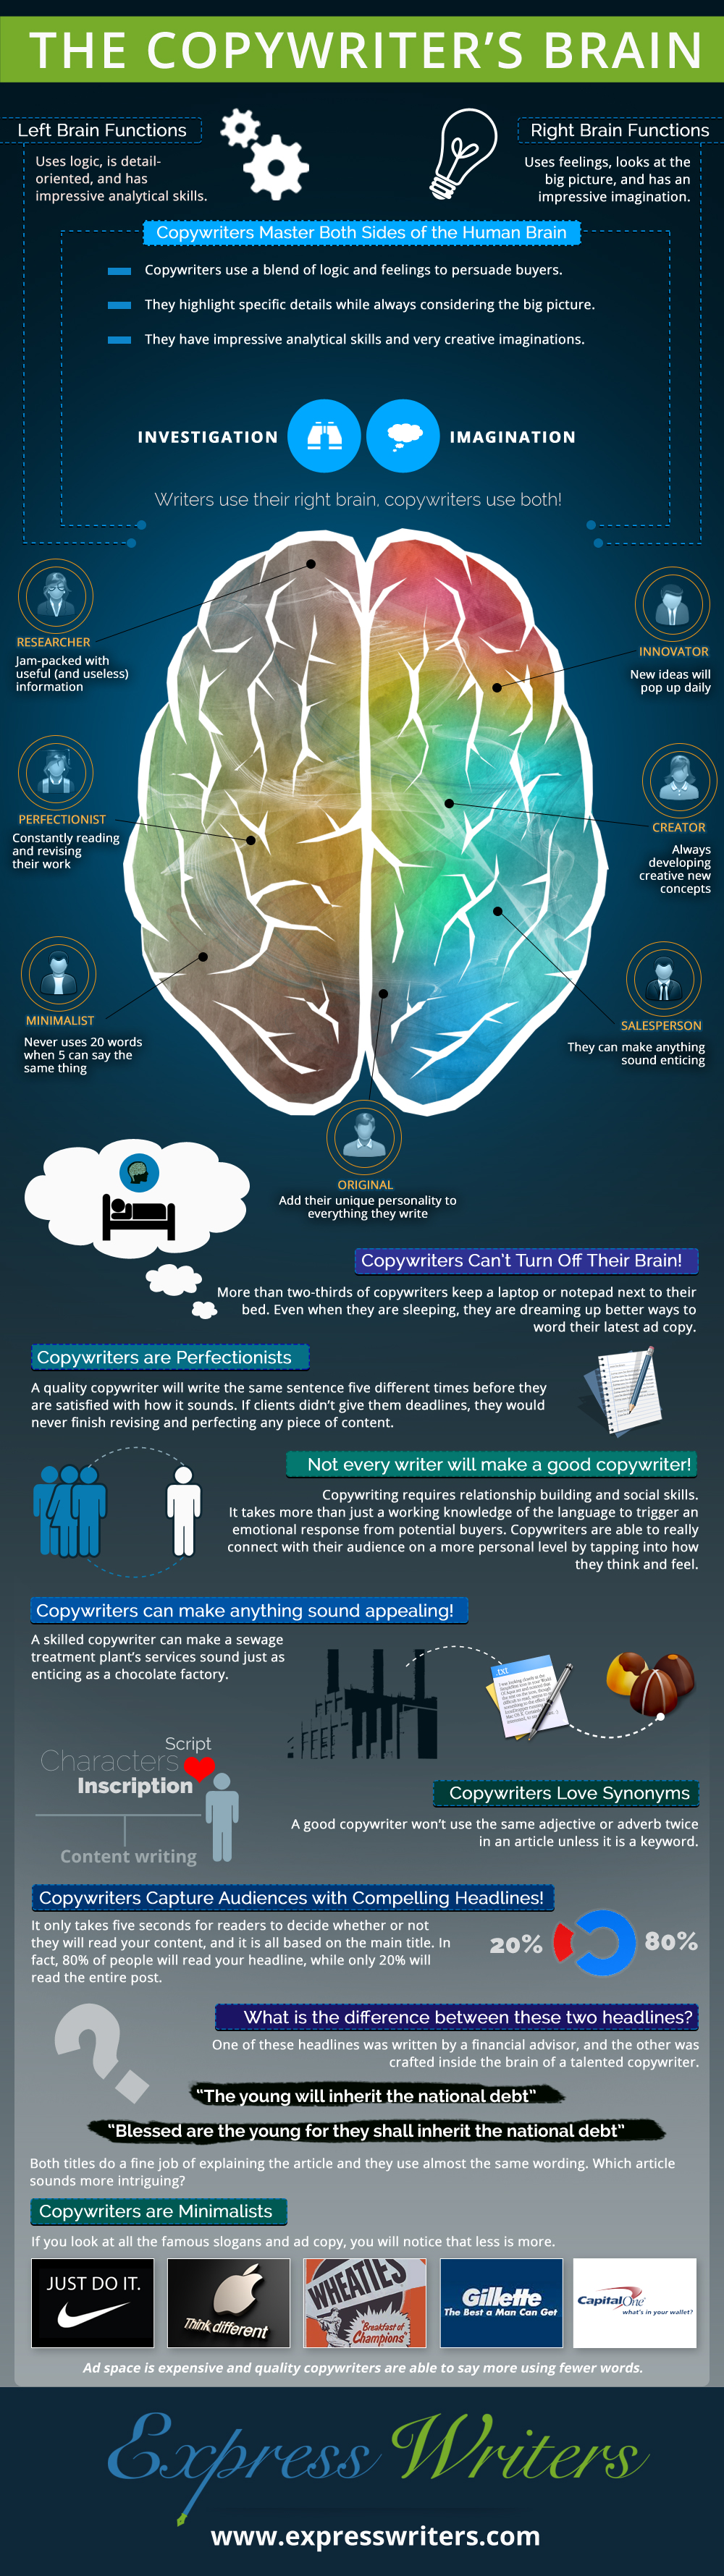 Infographic: The Copywriter's Brain